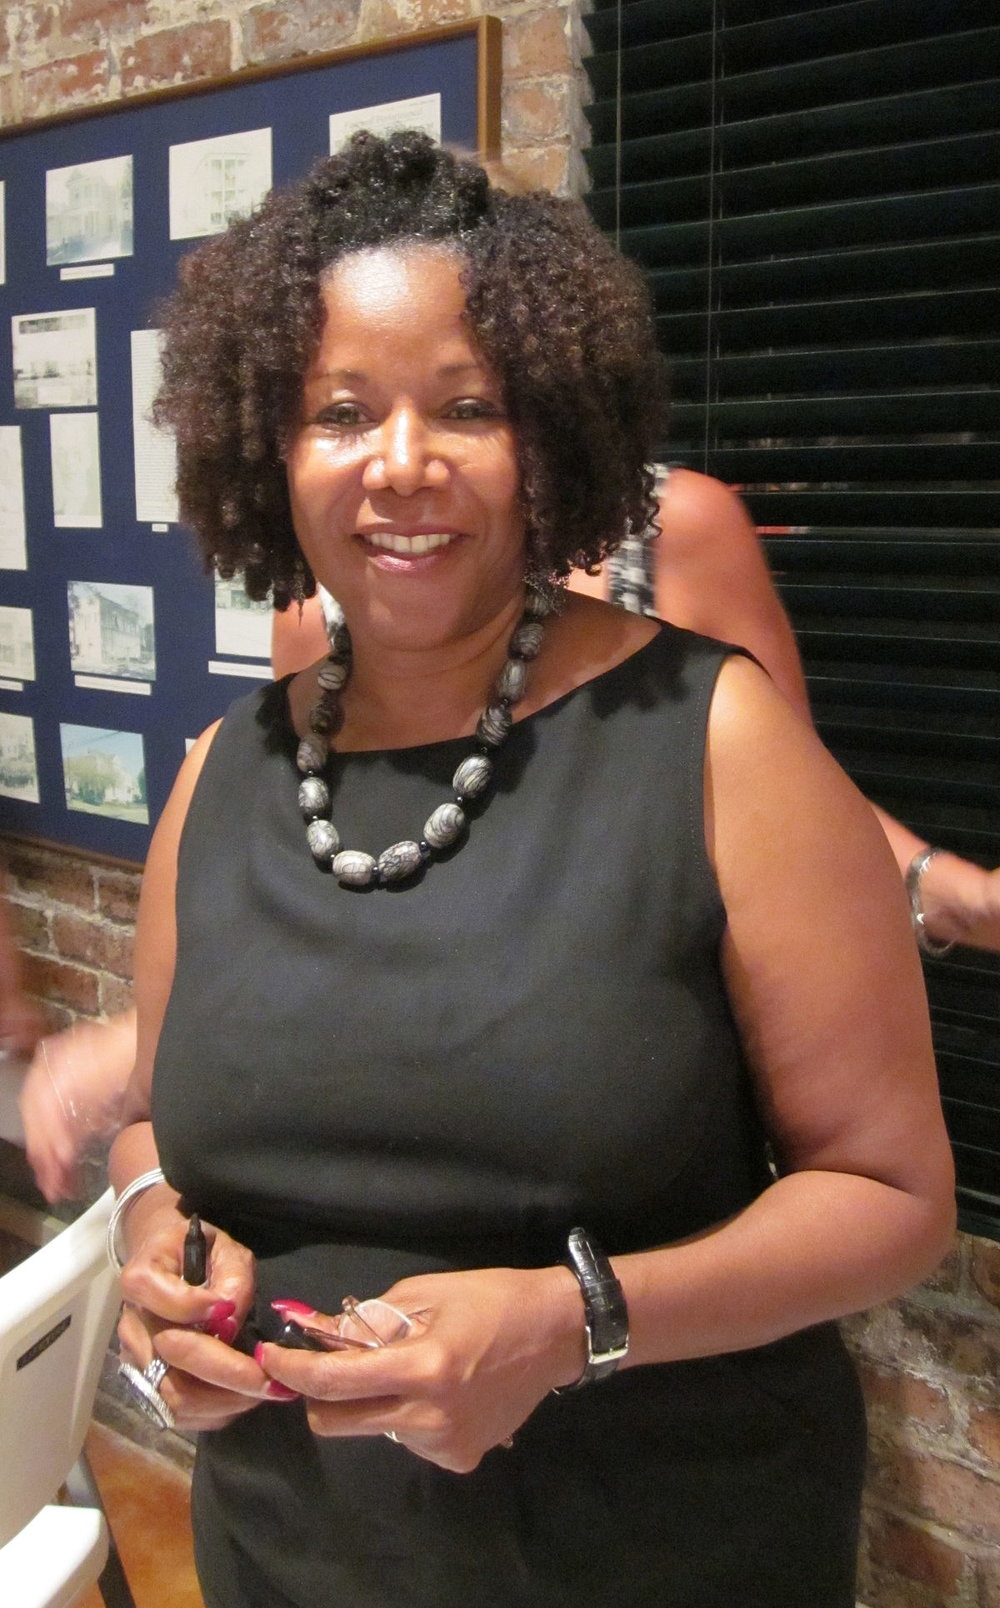 1200px-Ruby_Bridges_21_Sept_2010.JPG